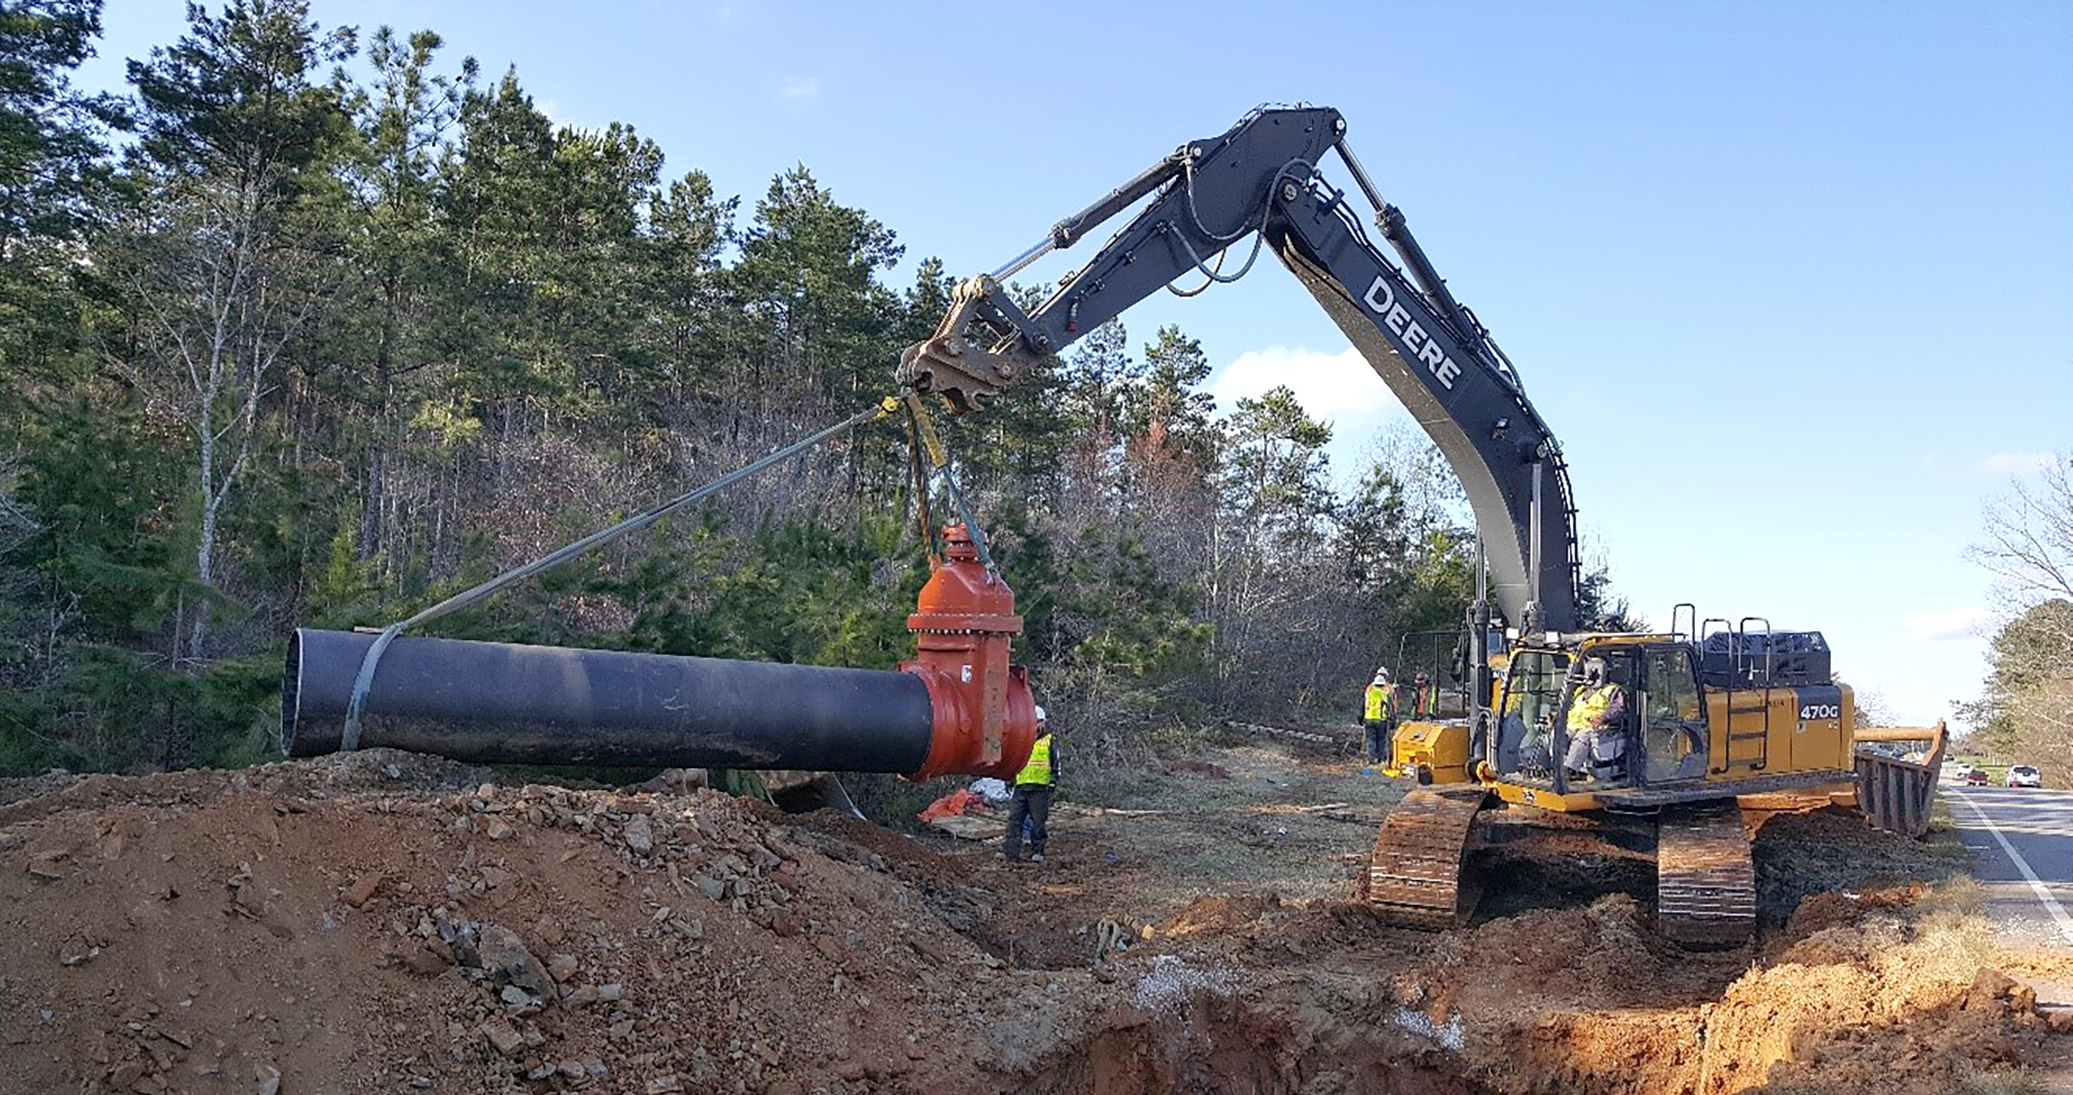 More than 13 miles of AMERICAN ductile iron pipe and nearly two dozen AMERICAN Flow Control resilient wedge gate valves with Flex-Ring ends were installed as part of the Richland Creek project.